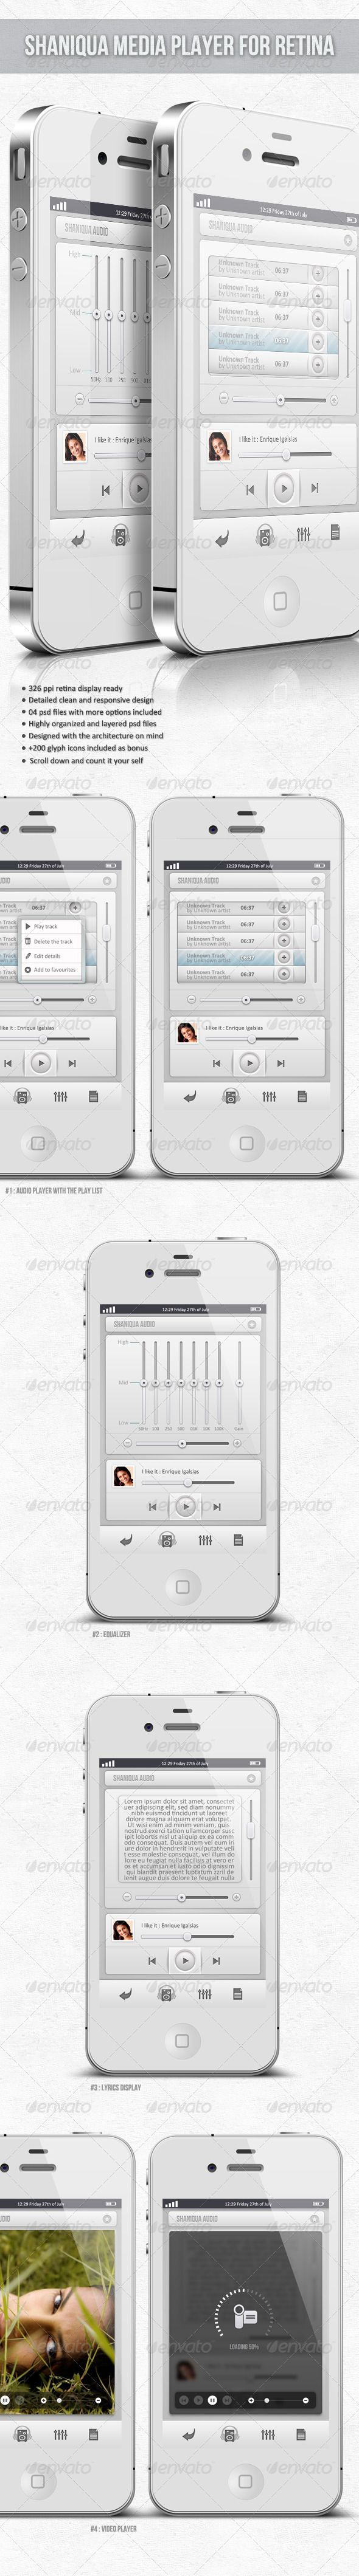 Retina Media Player - Shaniqua - GraphicRiver Item for Sale